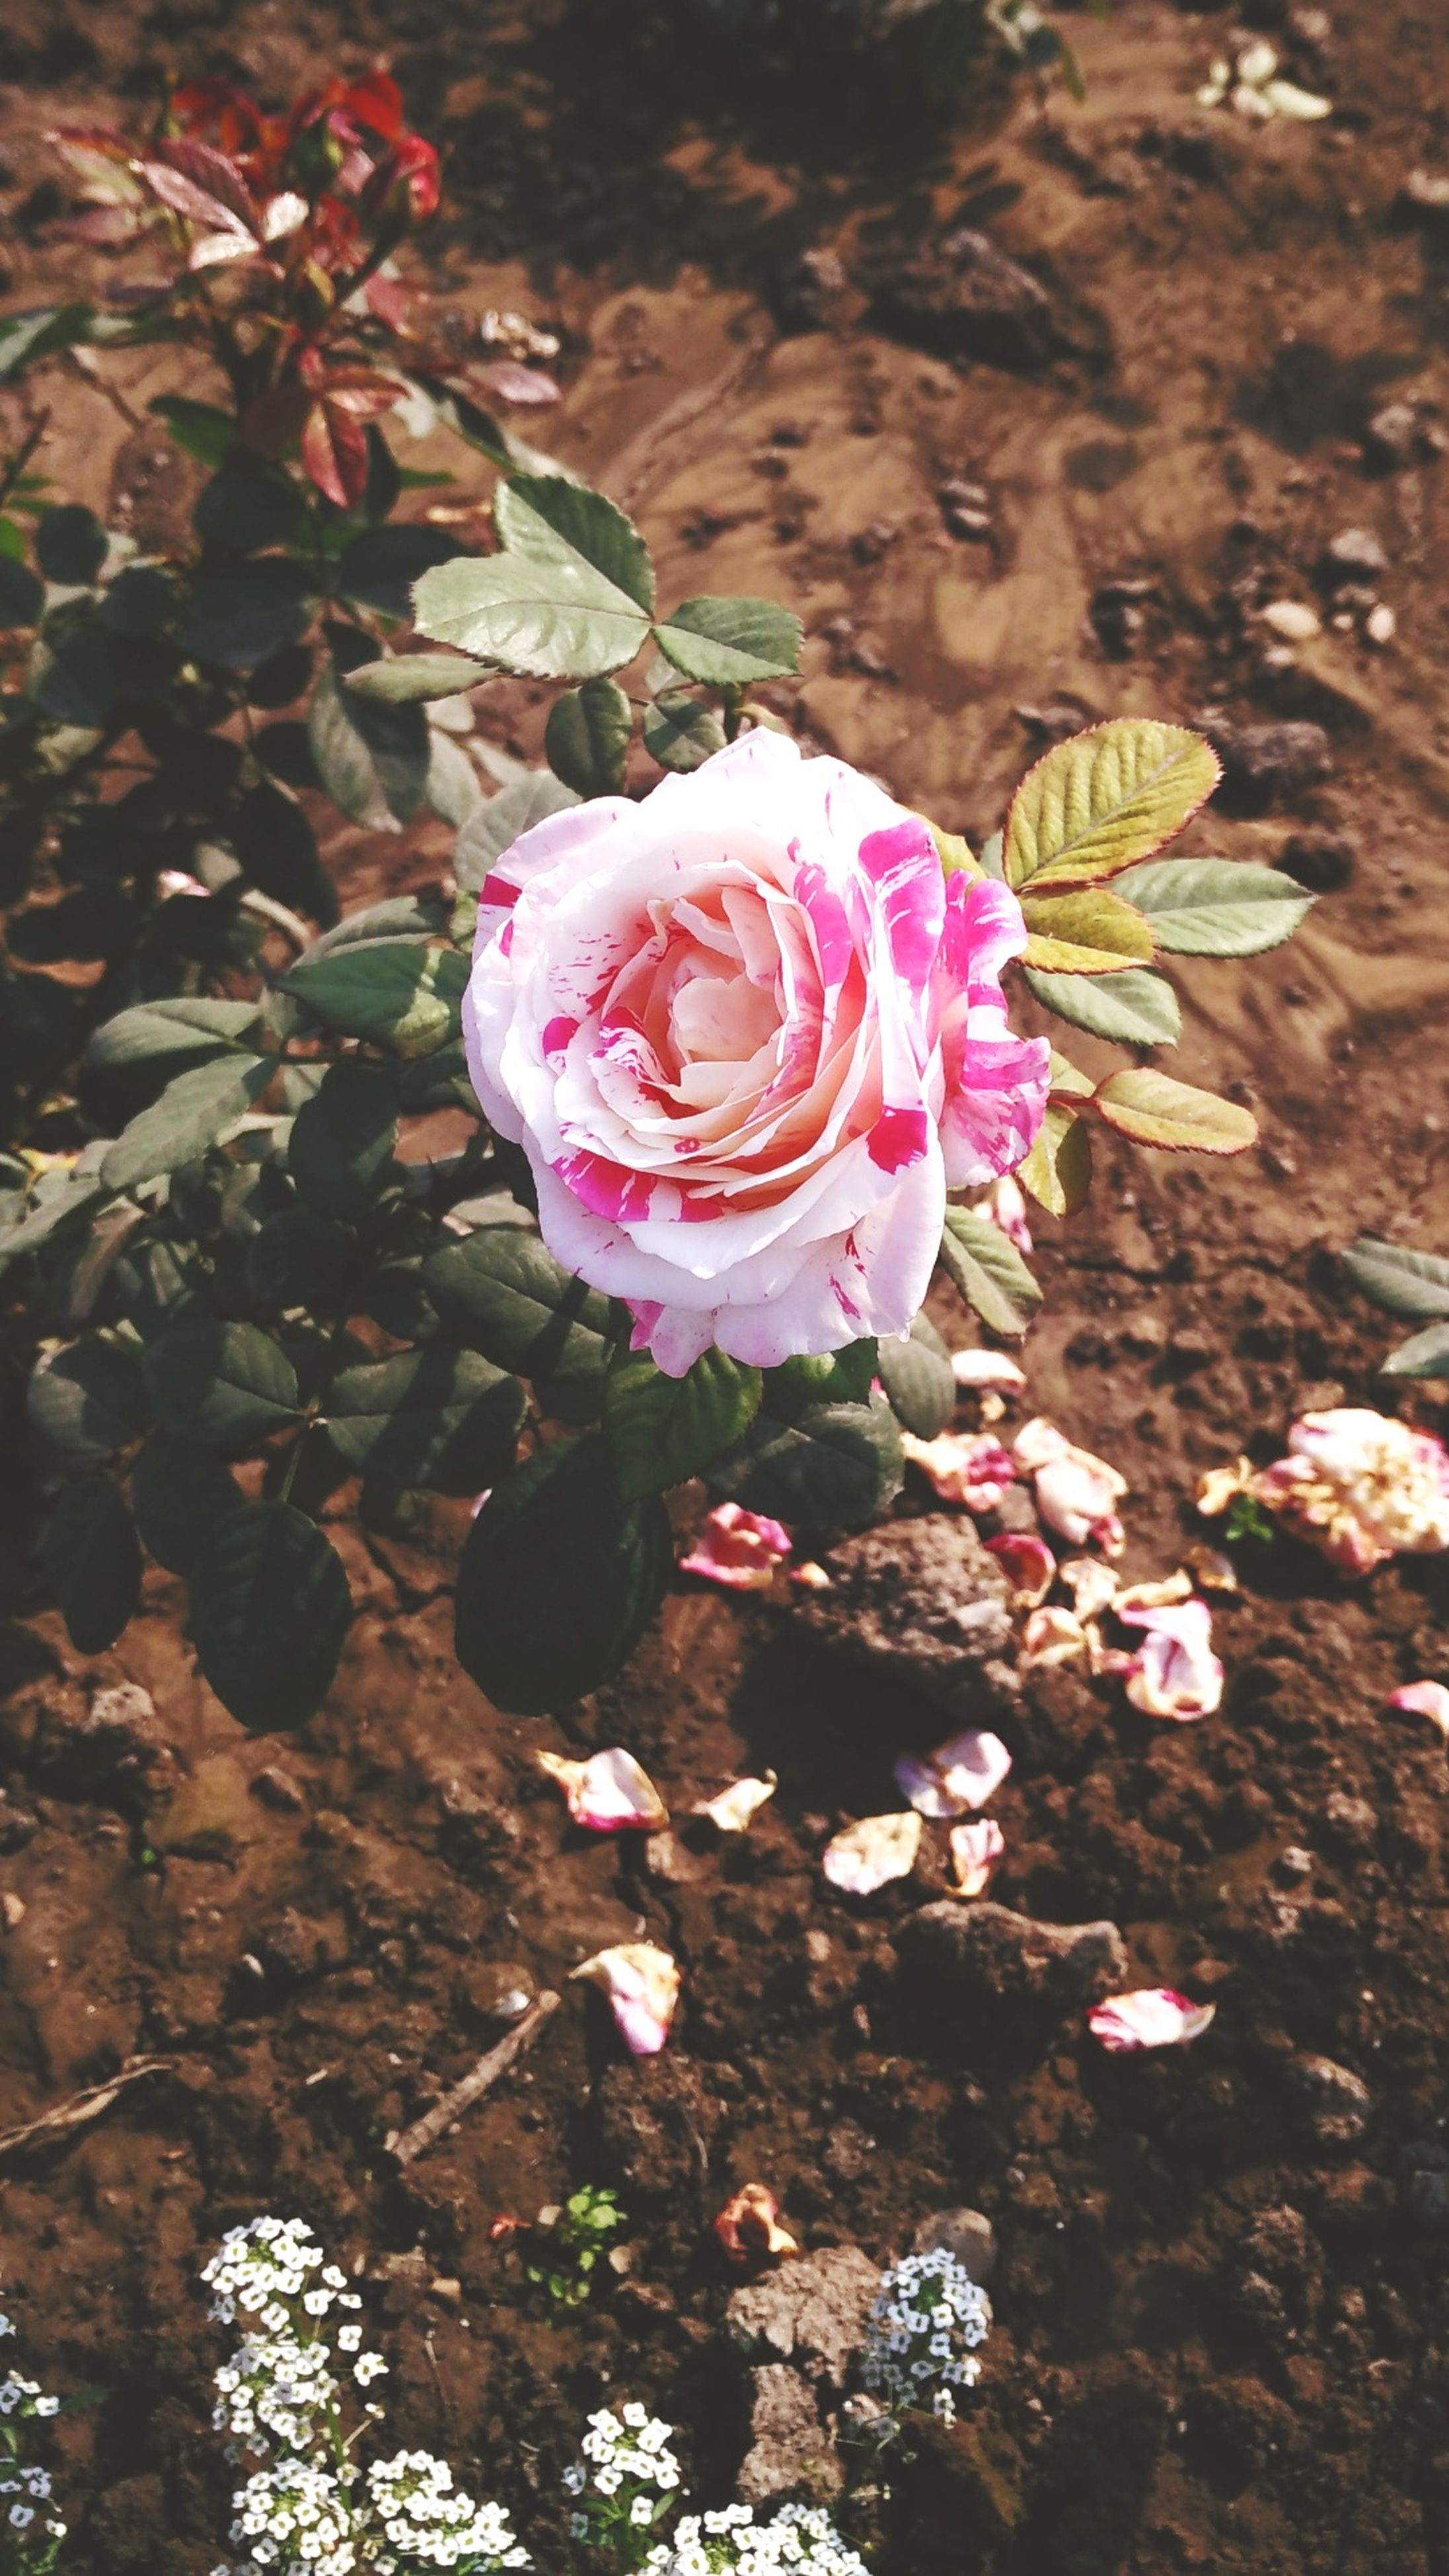 flower, fragility, petal, nature, flower head, growth, pink color, plant, high angle view, beauty in nature, freshness, leaf, springtime, blossom, outdoors, no people, close-up, day, water